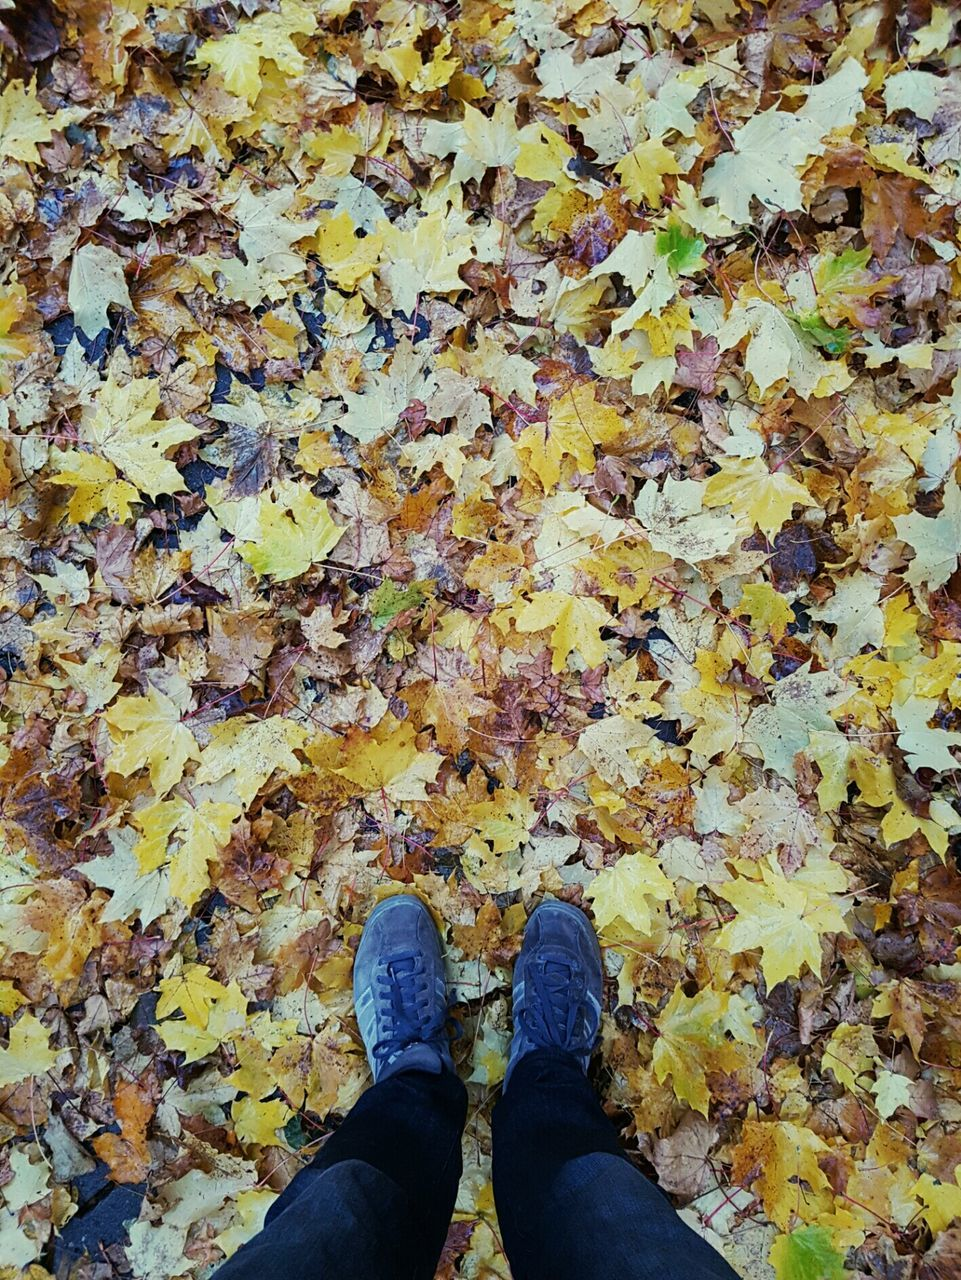 leaf, change, autumn, leaves, dry, shoe, fallen, low section, maple leaf, standing, personal perspective, nature, real people, human leg, outdoors, day, weather, high angle view, maple, one person, beauty in nature, abundance, directly above, yellow, close-up, lifestyles, people